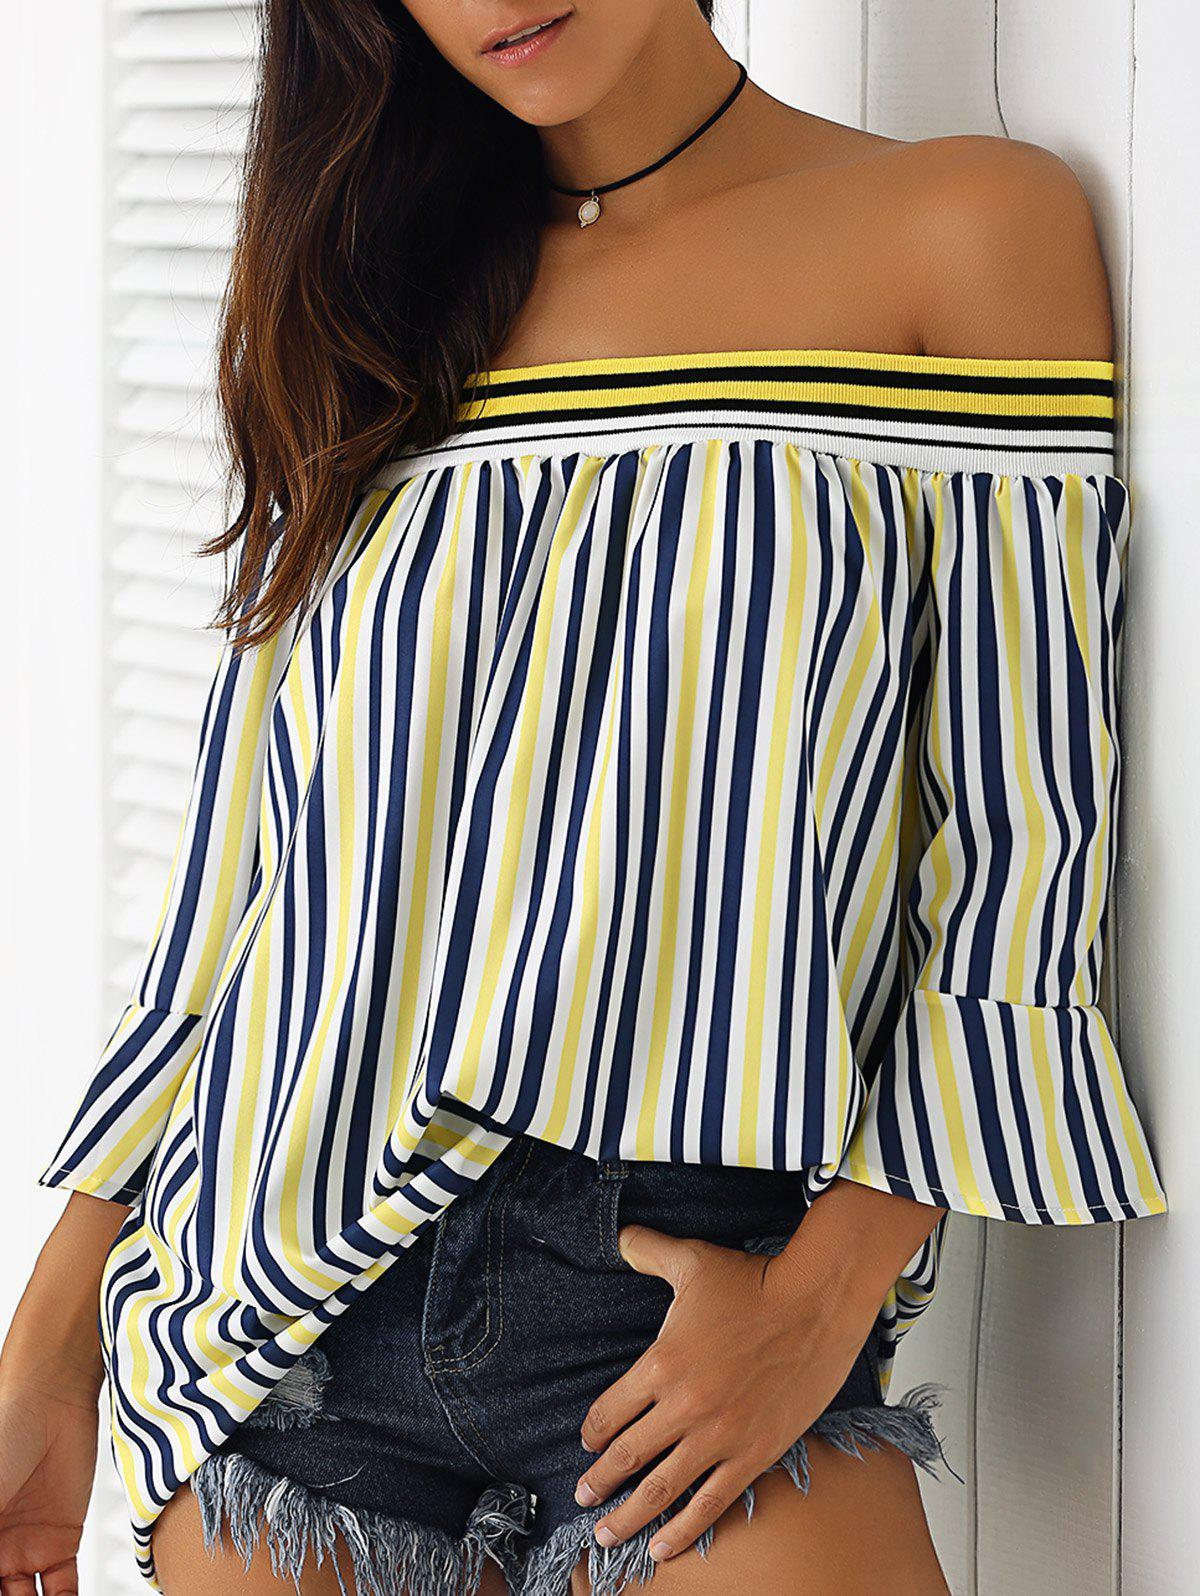 Simple Women's Off-The-Shoulder Bell Sleeves Striped Blouse - YELLOW XL